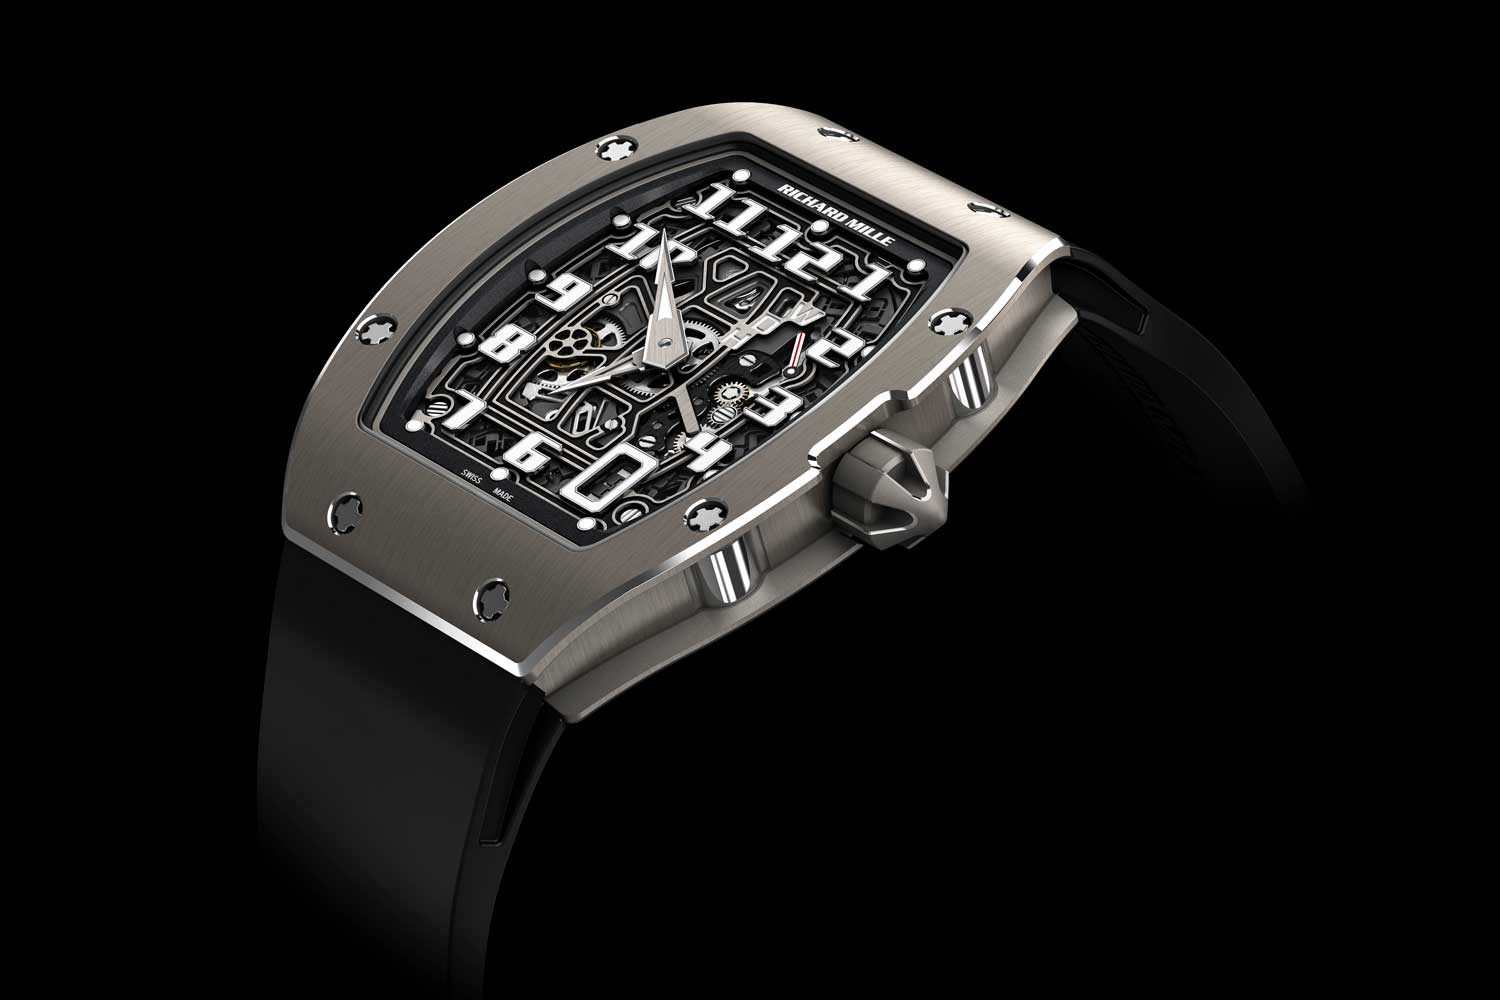 The RM 67-01 was Richard Mille's first extra thin tonneau-shaped watch powered by an all-new, in-house automatic movement, the platinum rotor equipped CRMA6, which measures 3.6mm high; the watch itself is thereafter, 7.75mm high